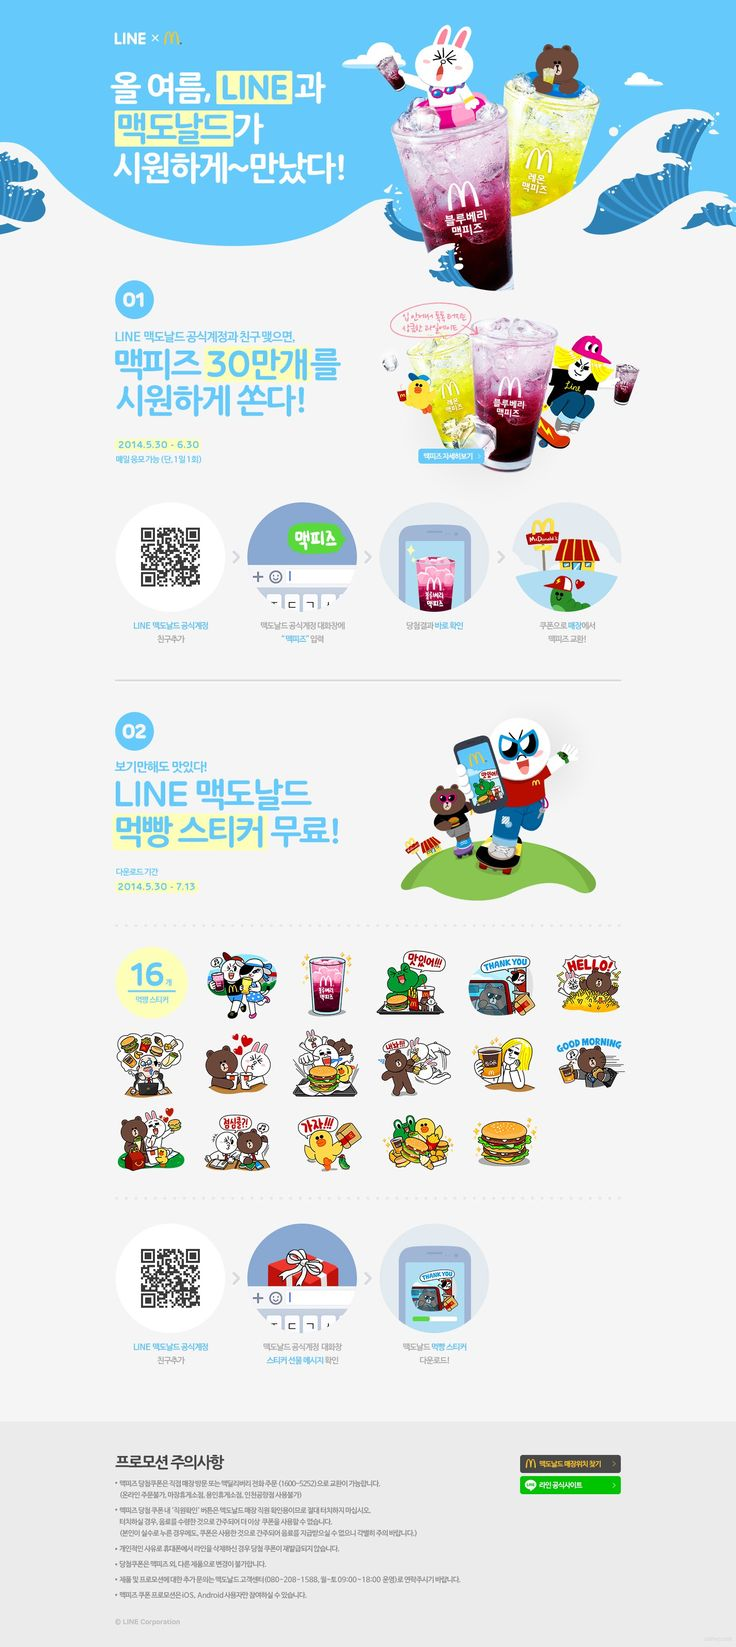 Korea-web-Promotions-design-special-topic-ui-2030